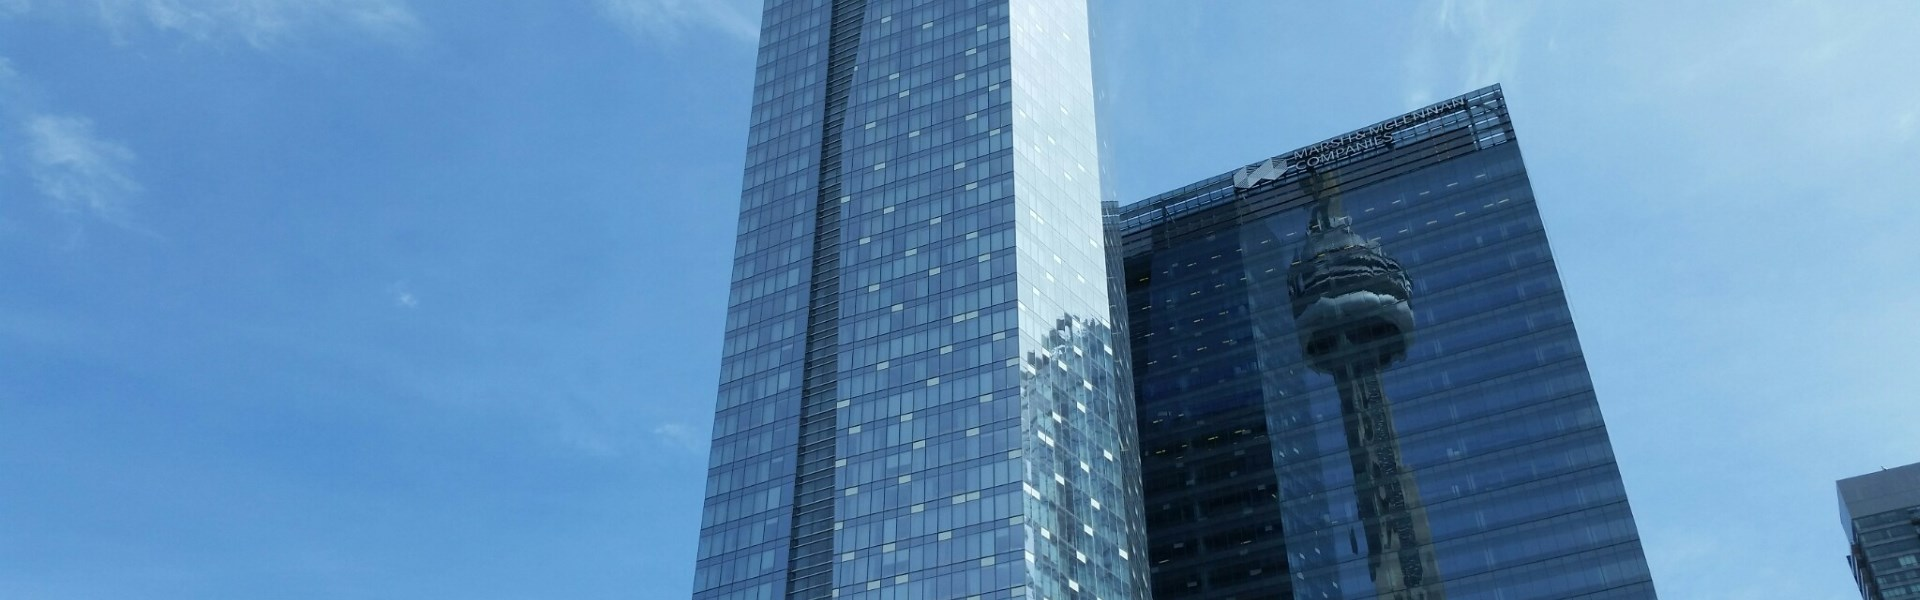 toronto-reflections-website-content-writing